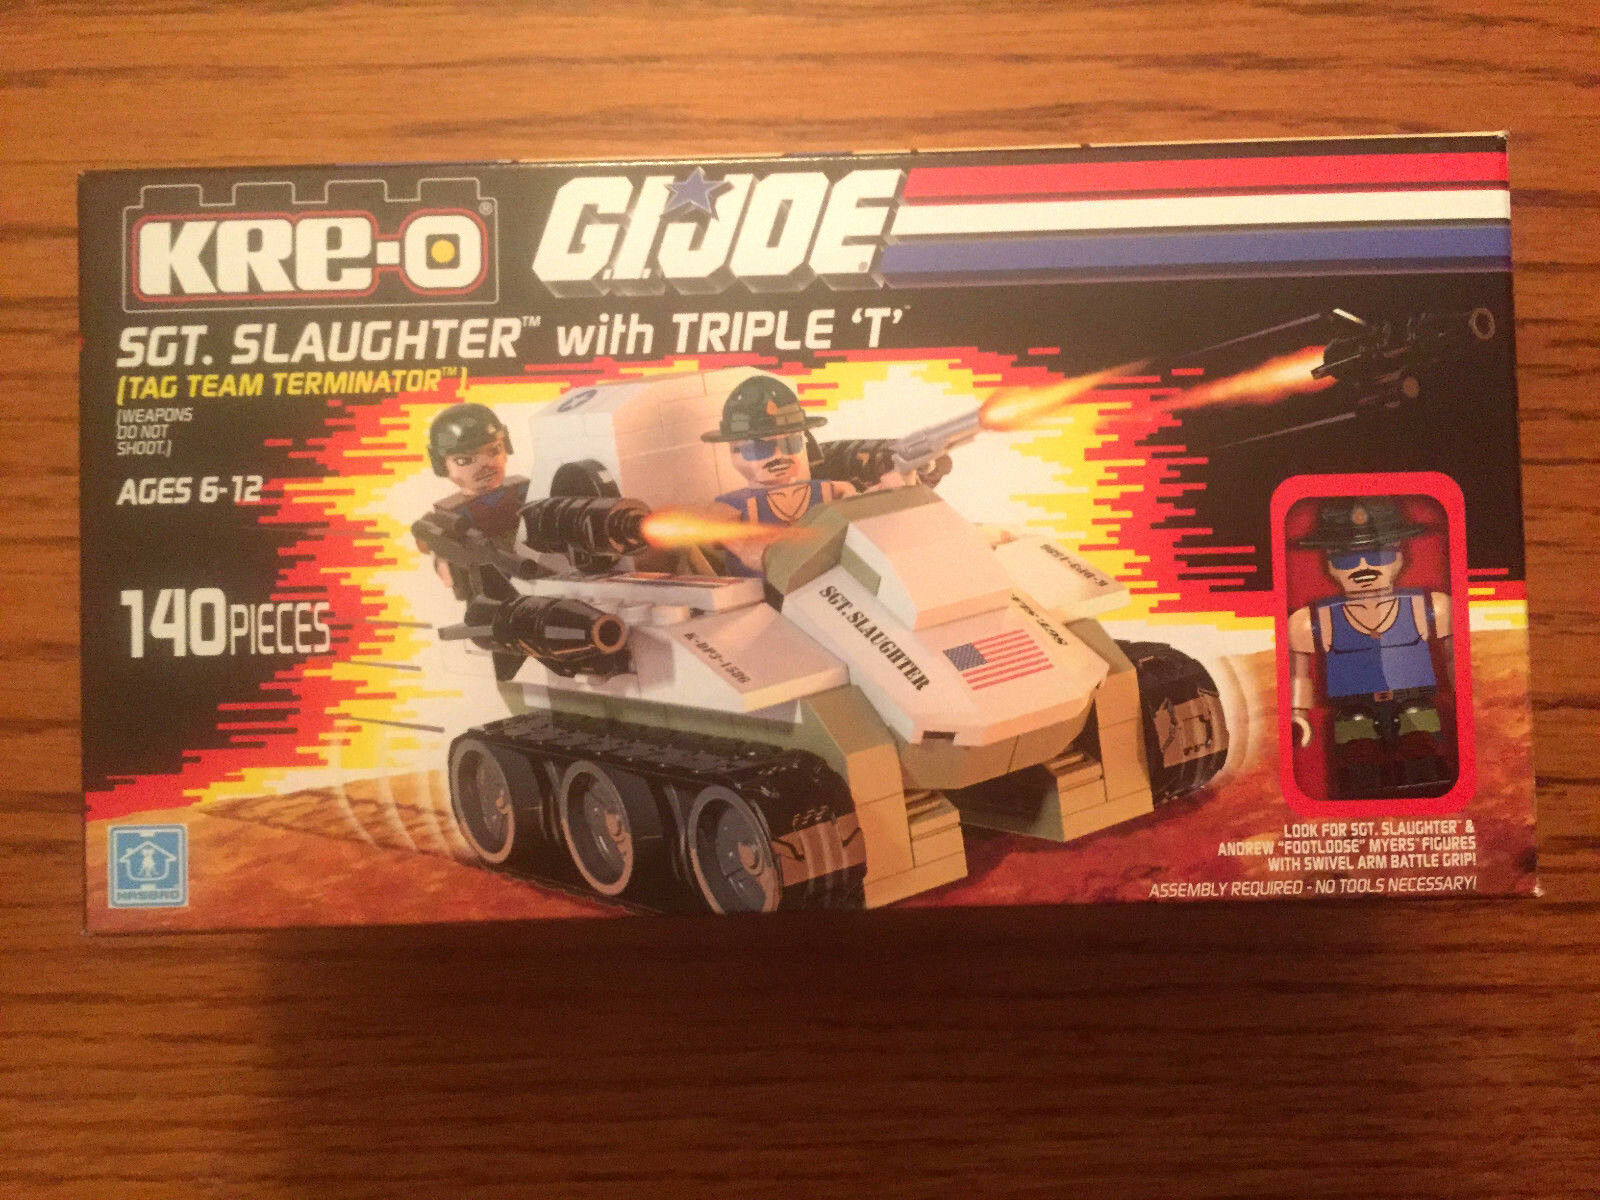 SDCC 2015 Hasbro Exclusive GI Joe Sargeants abat TRIPLE T Kreo loose